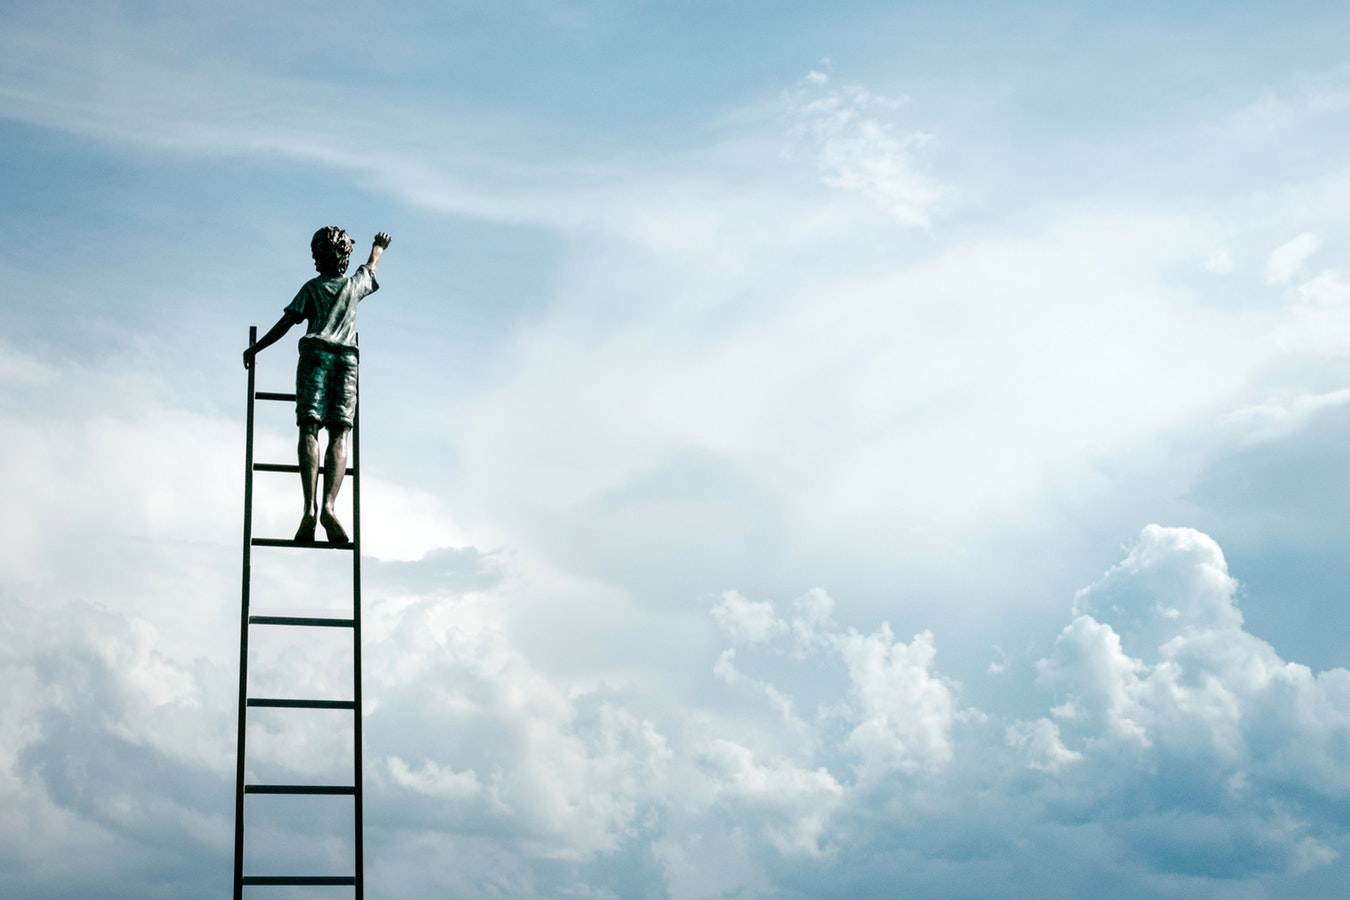 Image of a boy on a ladder reaching for the sky